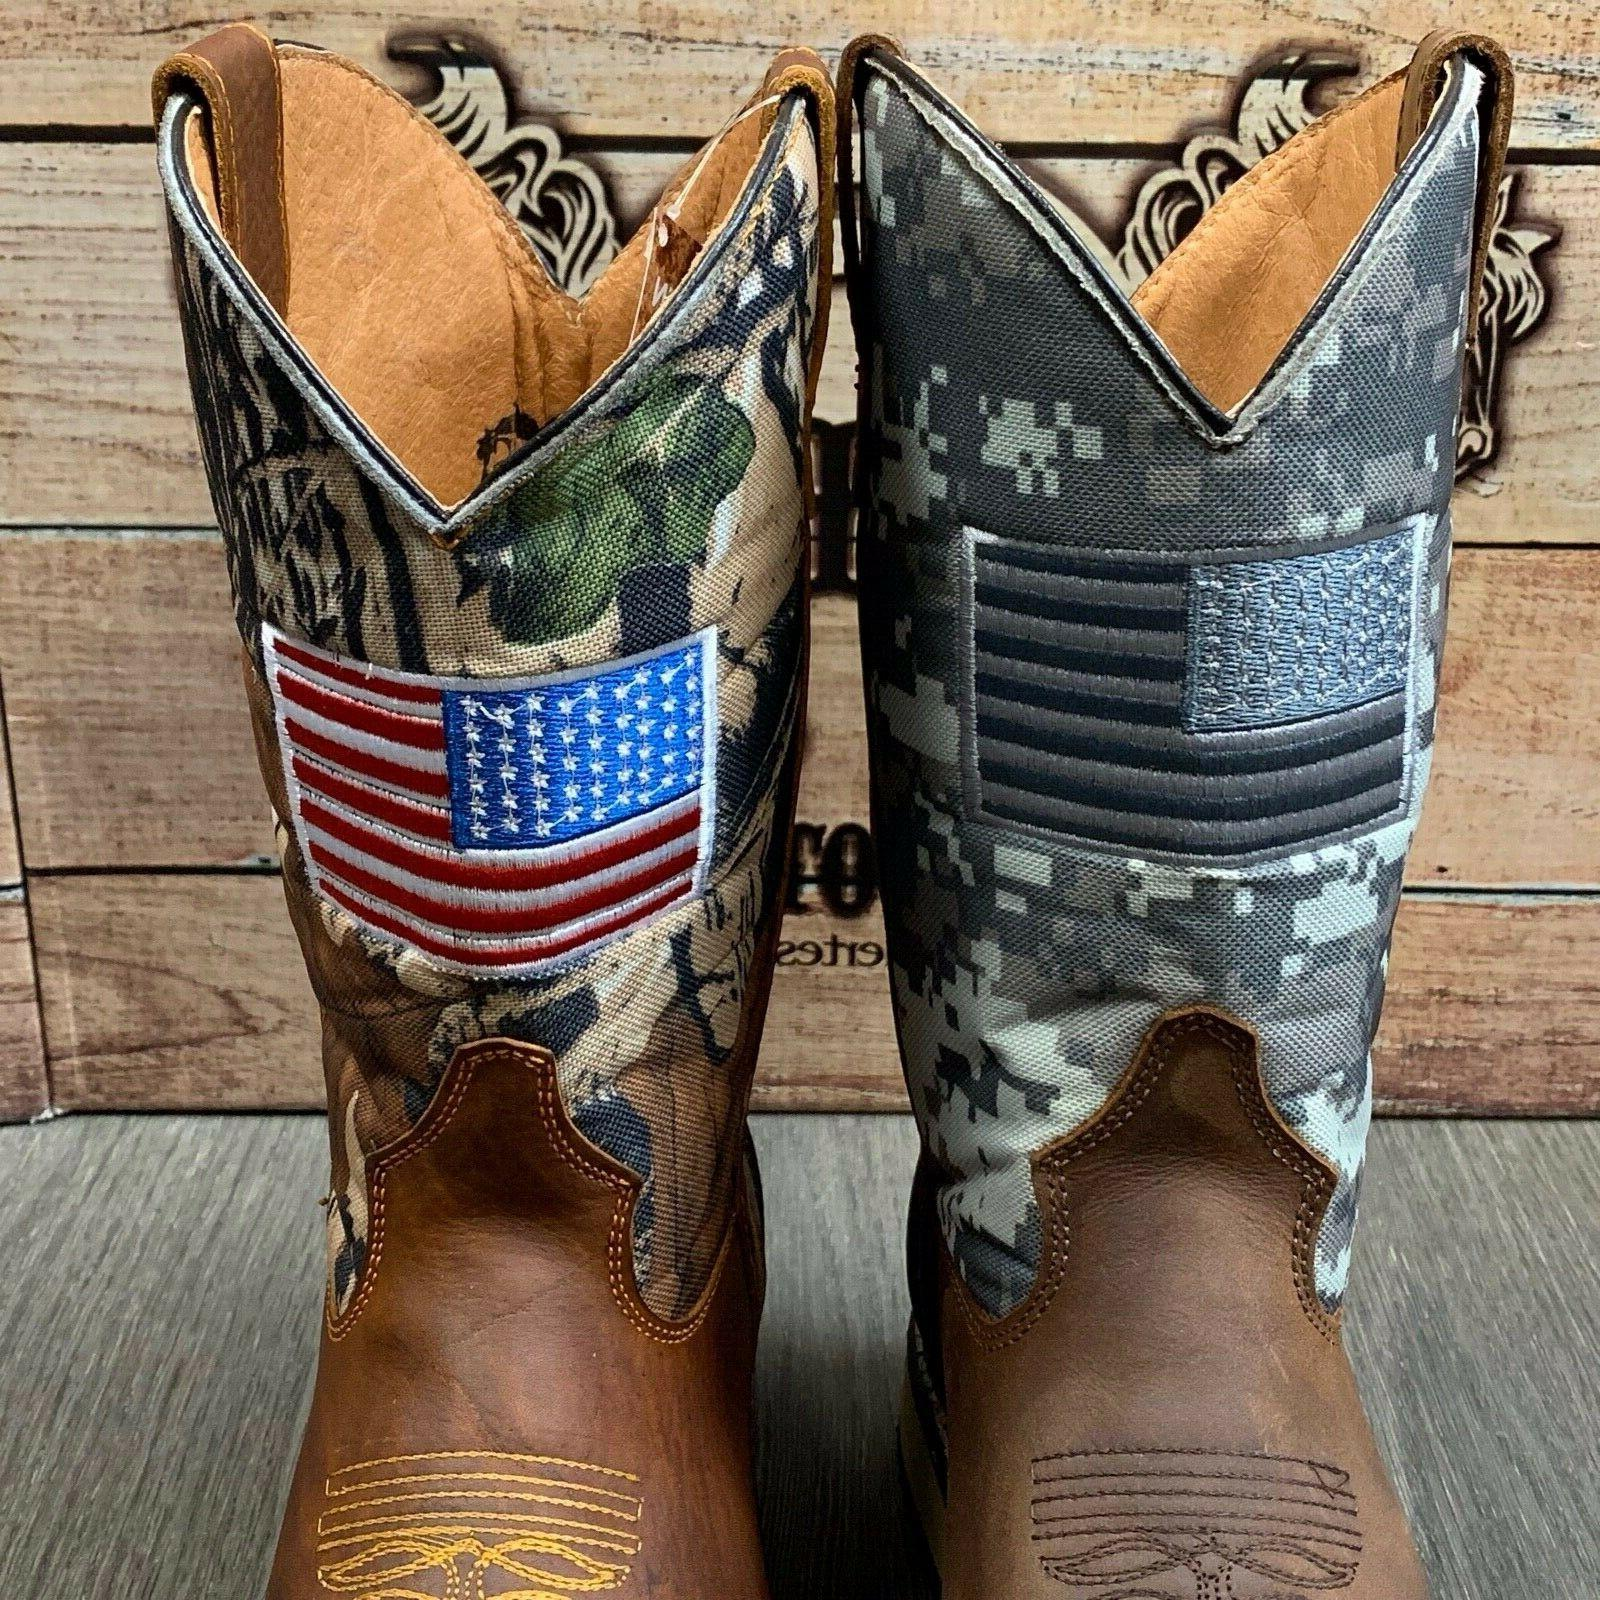 MEN'S WORK BOOTS FLAG SOFT LEATHER SAFETY